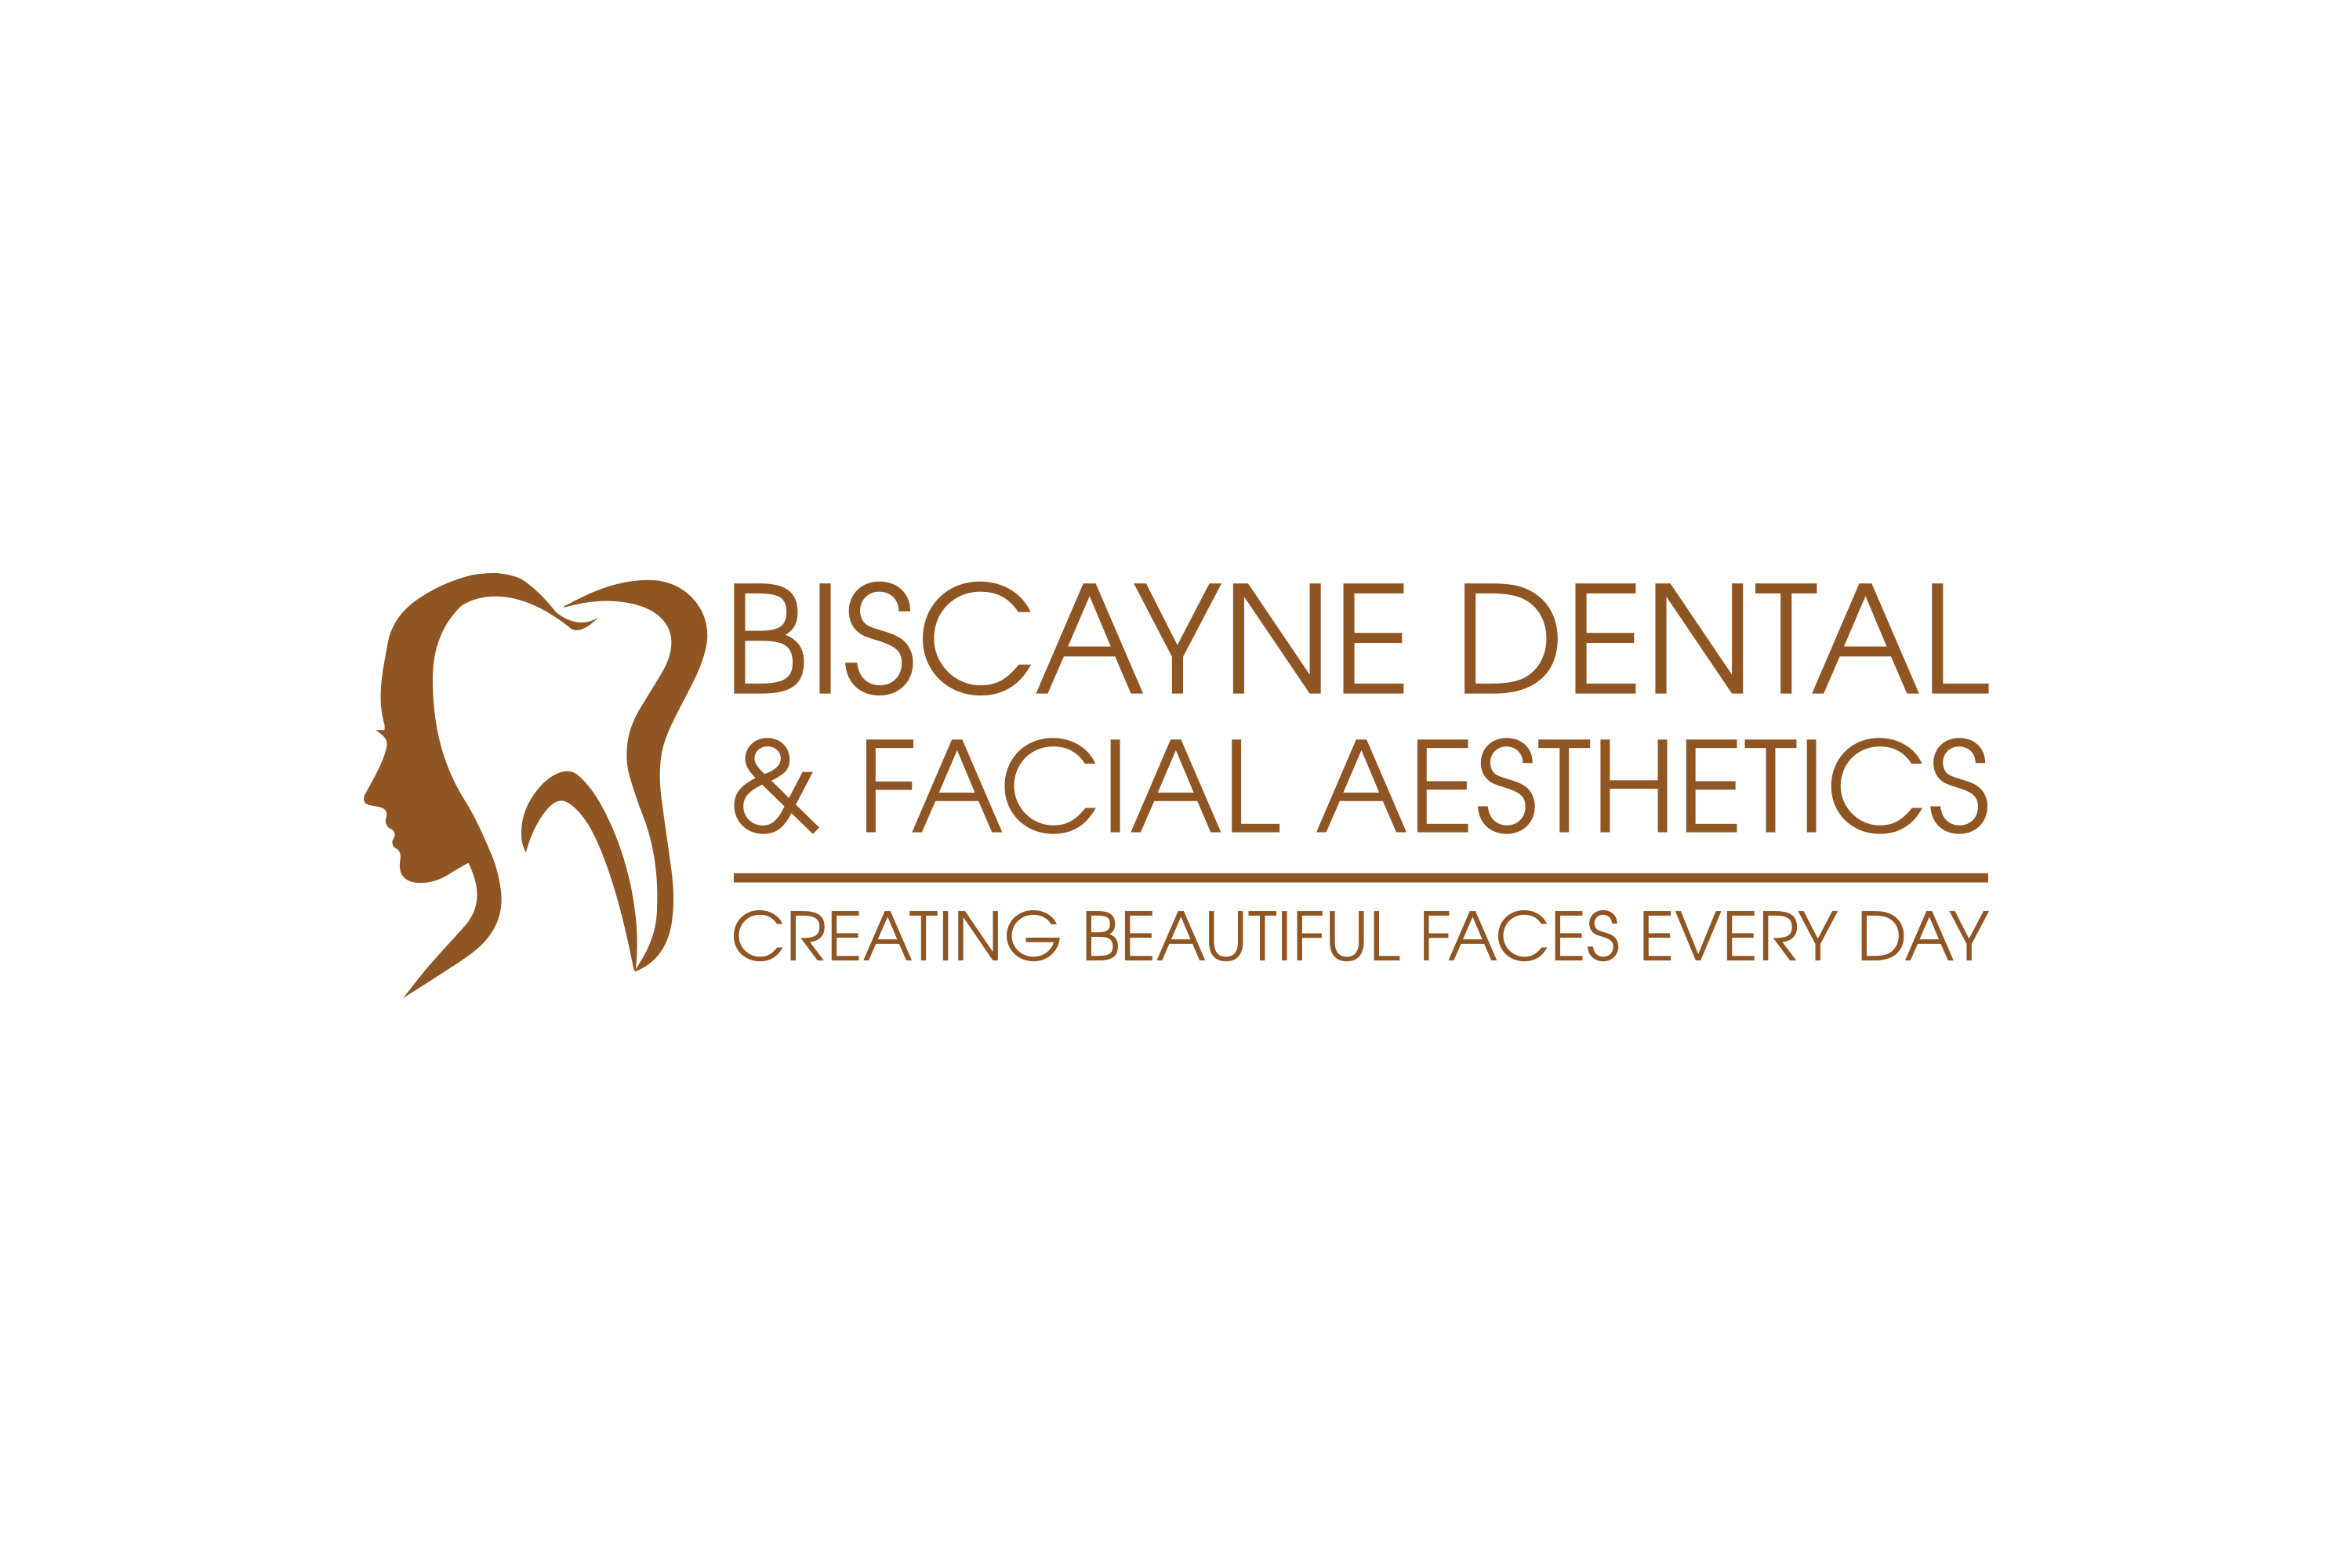 Biscayne Dental & Facial Aesthetics reviews | 350 NE 24th St - Miami FL